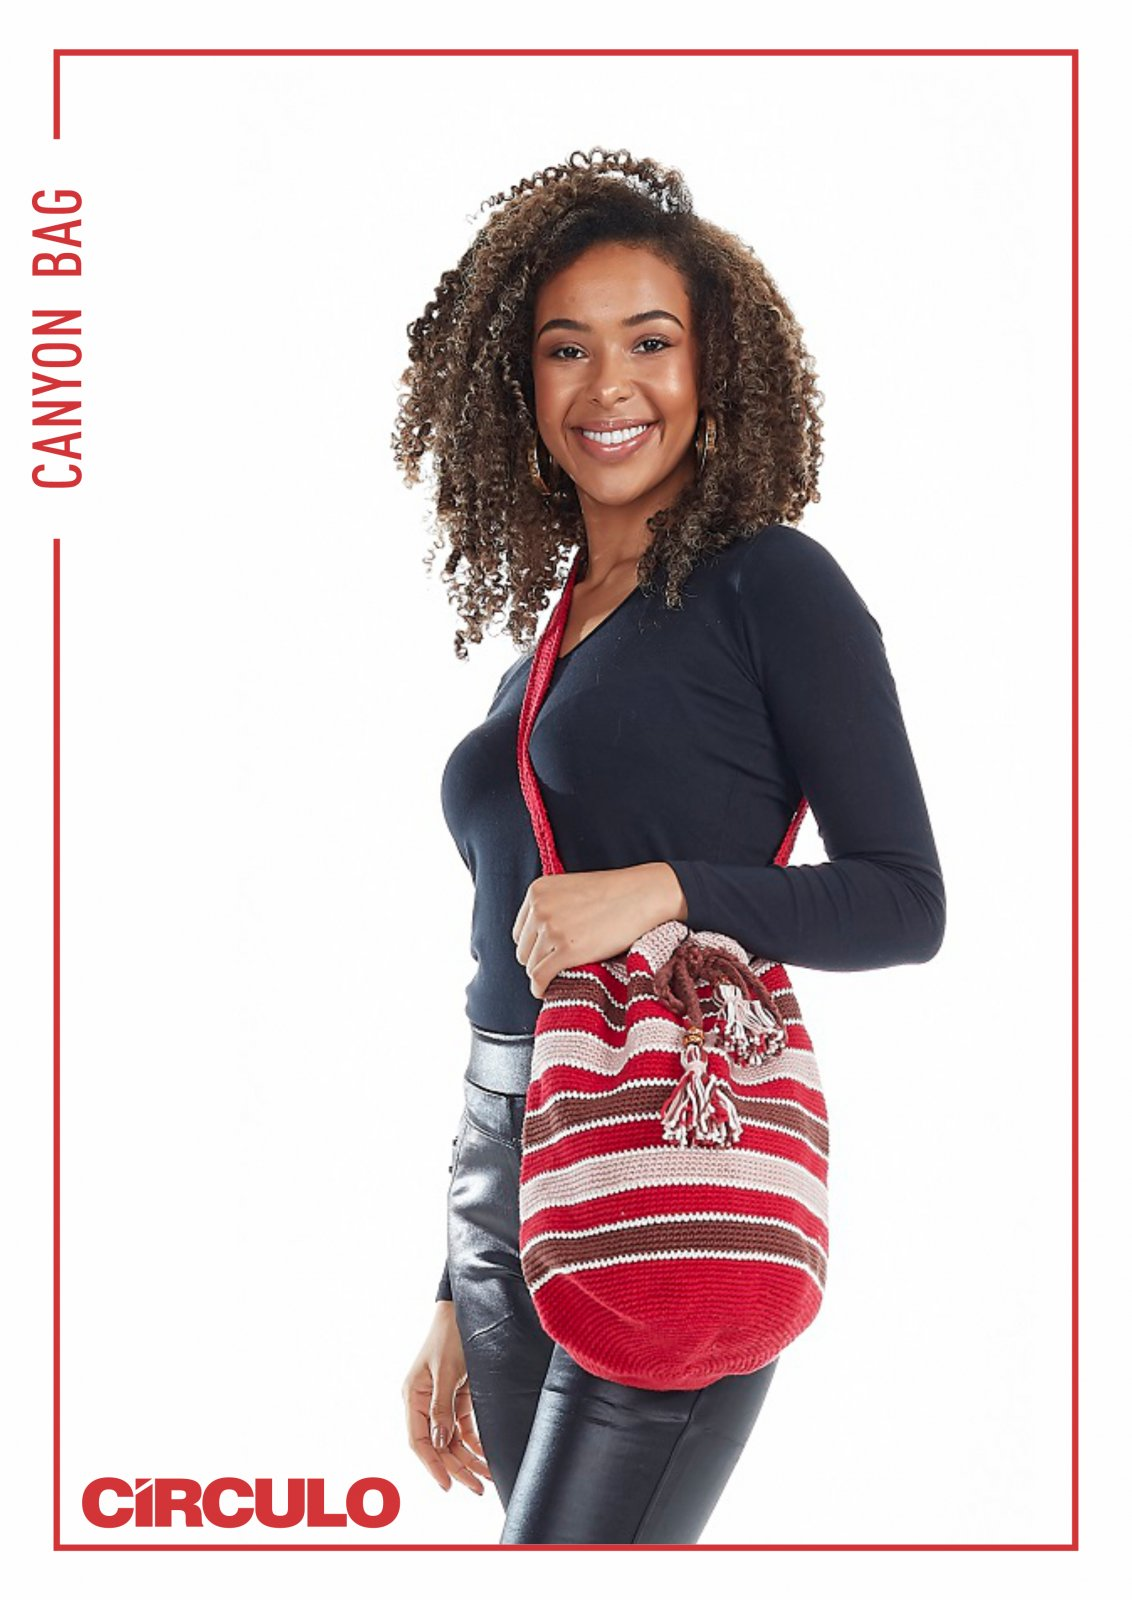 Circulo Duna Canyon Bag Pattern (Digital Download)